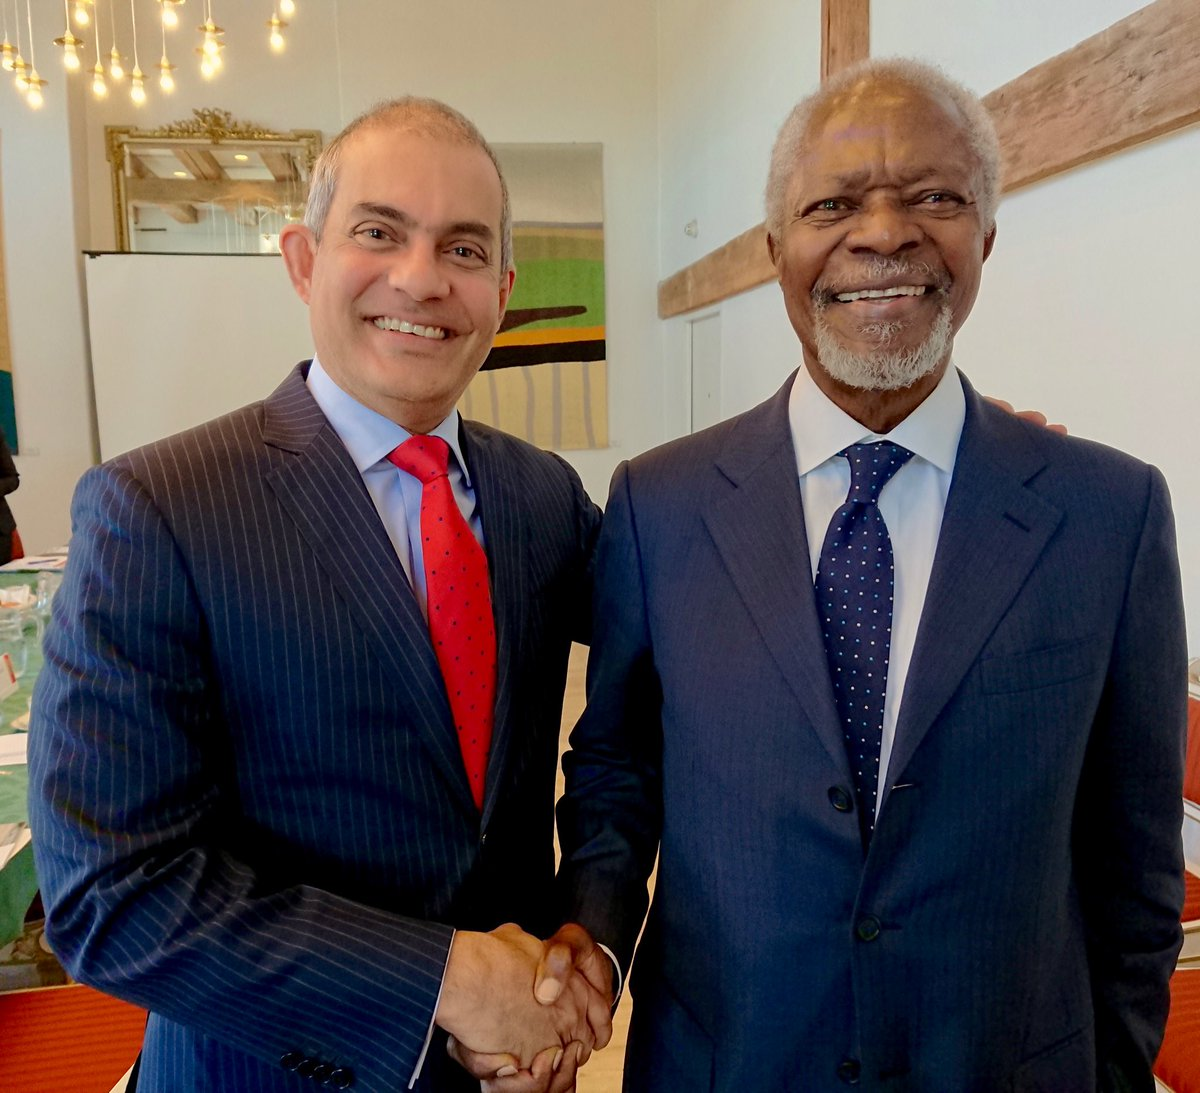 With Kofi Annan in Copenhagen in a June at the launch of the lessons learned report of the Rakhine Advisory Commission. A great humanitarian leader Committed & engaged to making a difference till the very end. May he Rest In Peace!